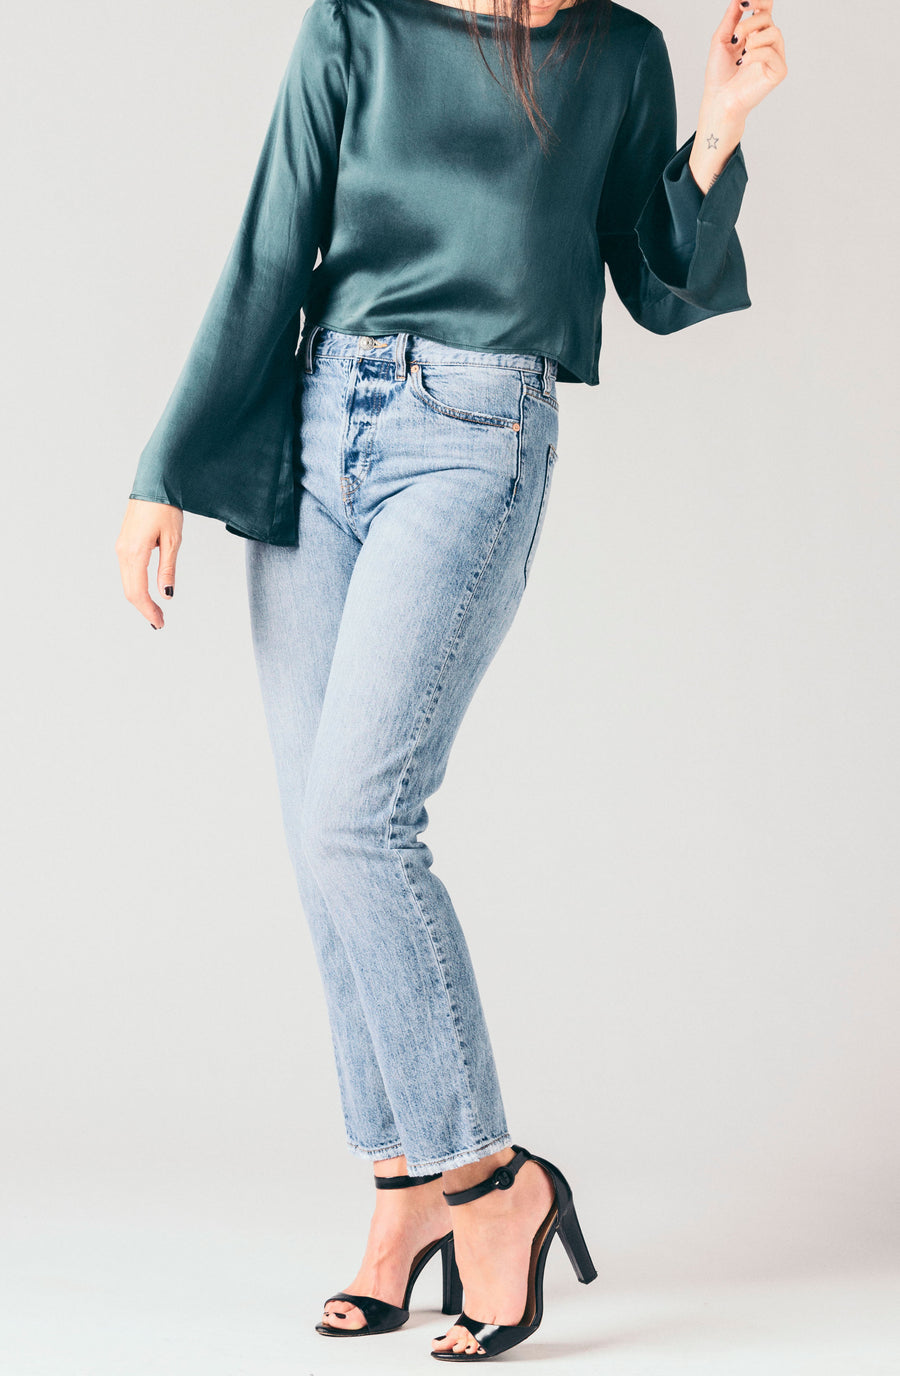 The Coverii emerald green silk long sleeve cropped blouse with bell sleeves.